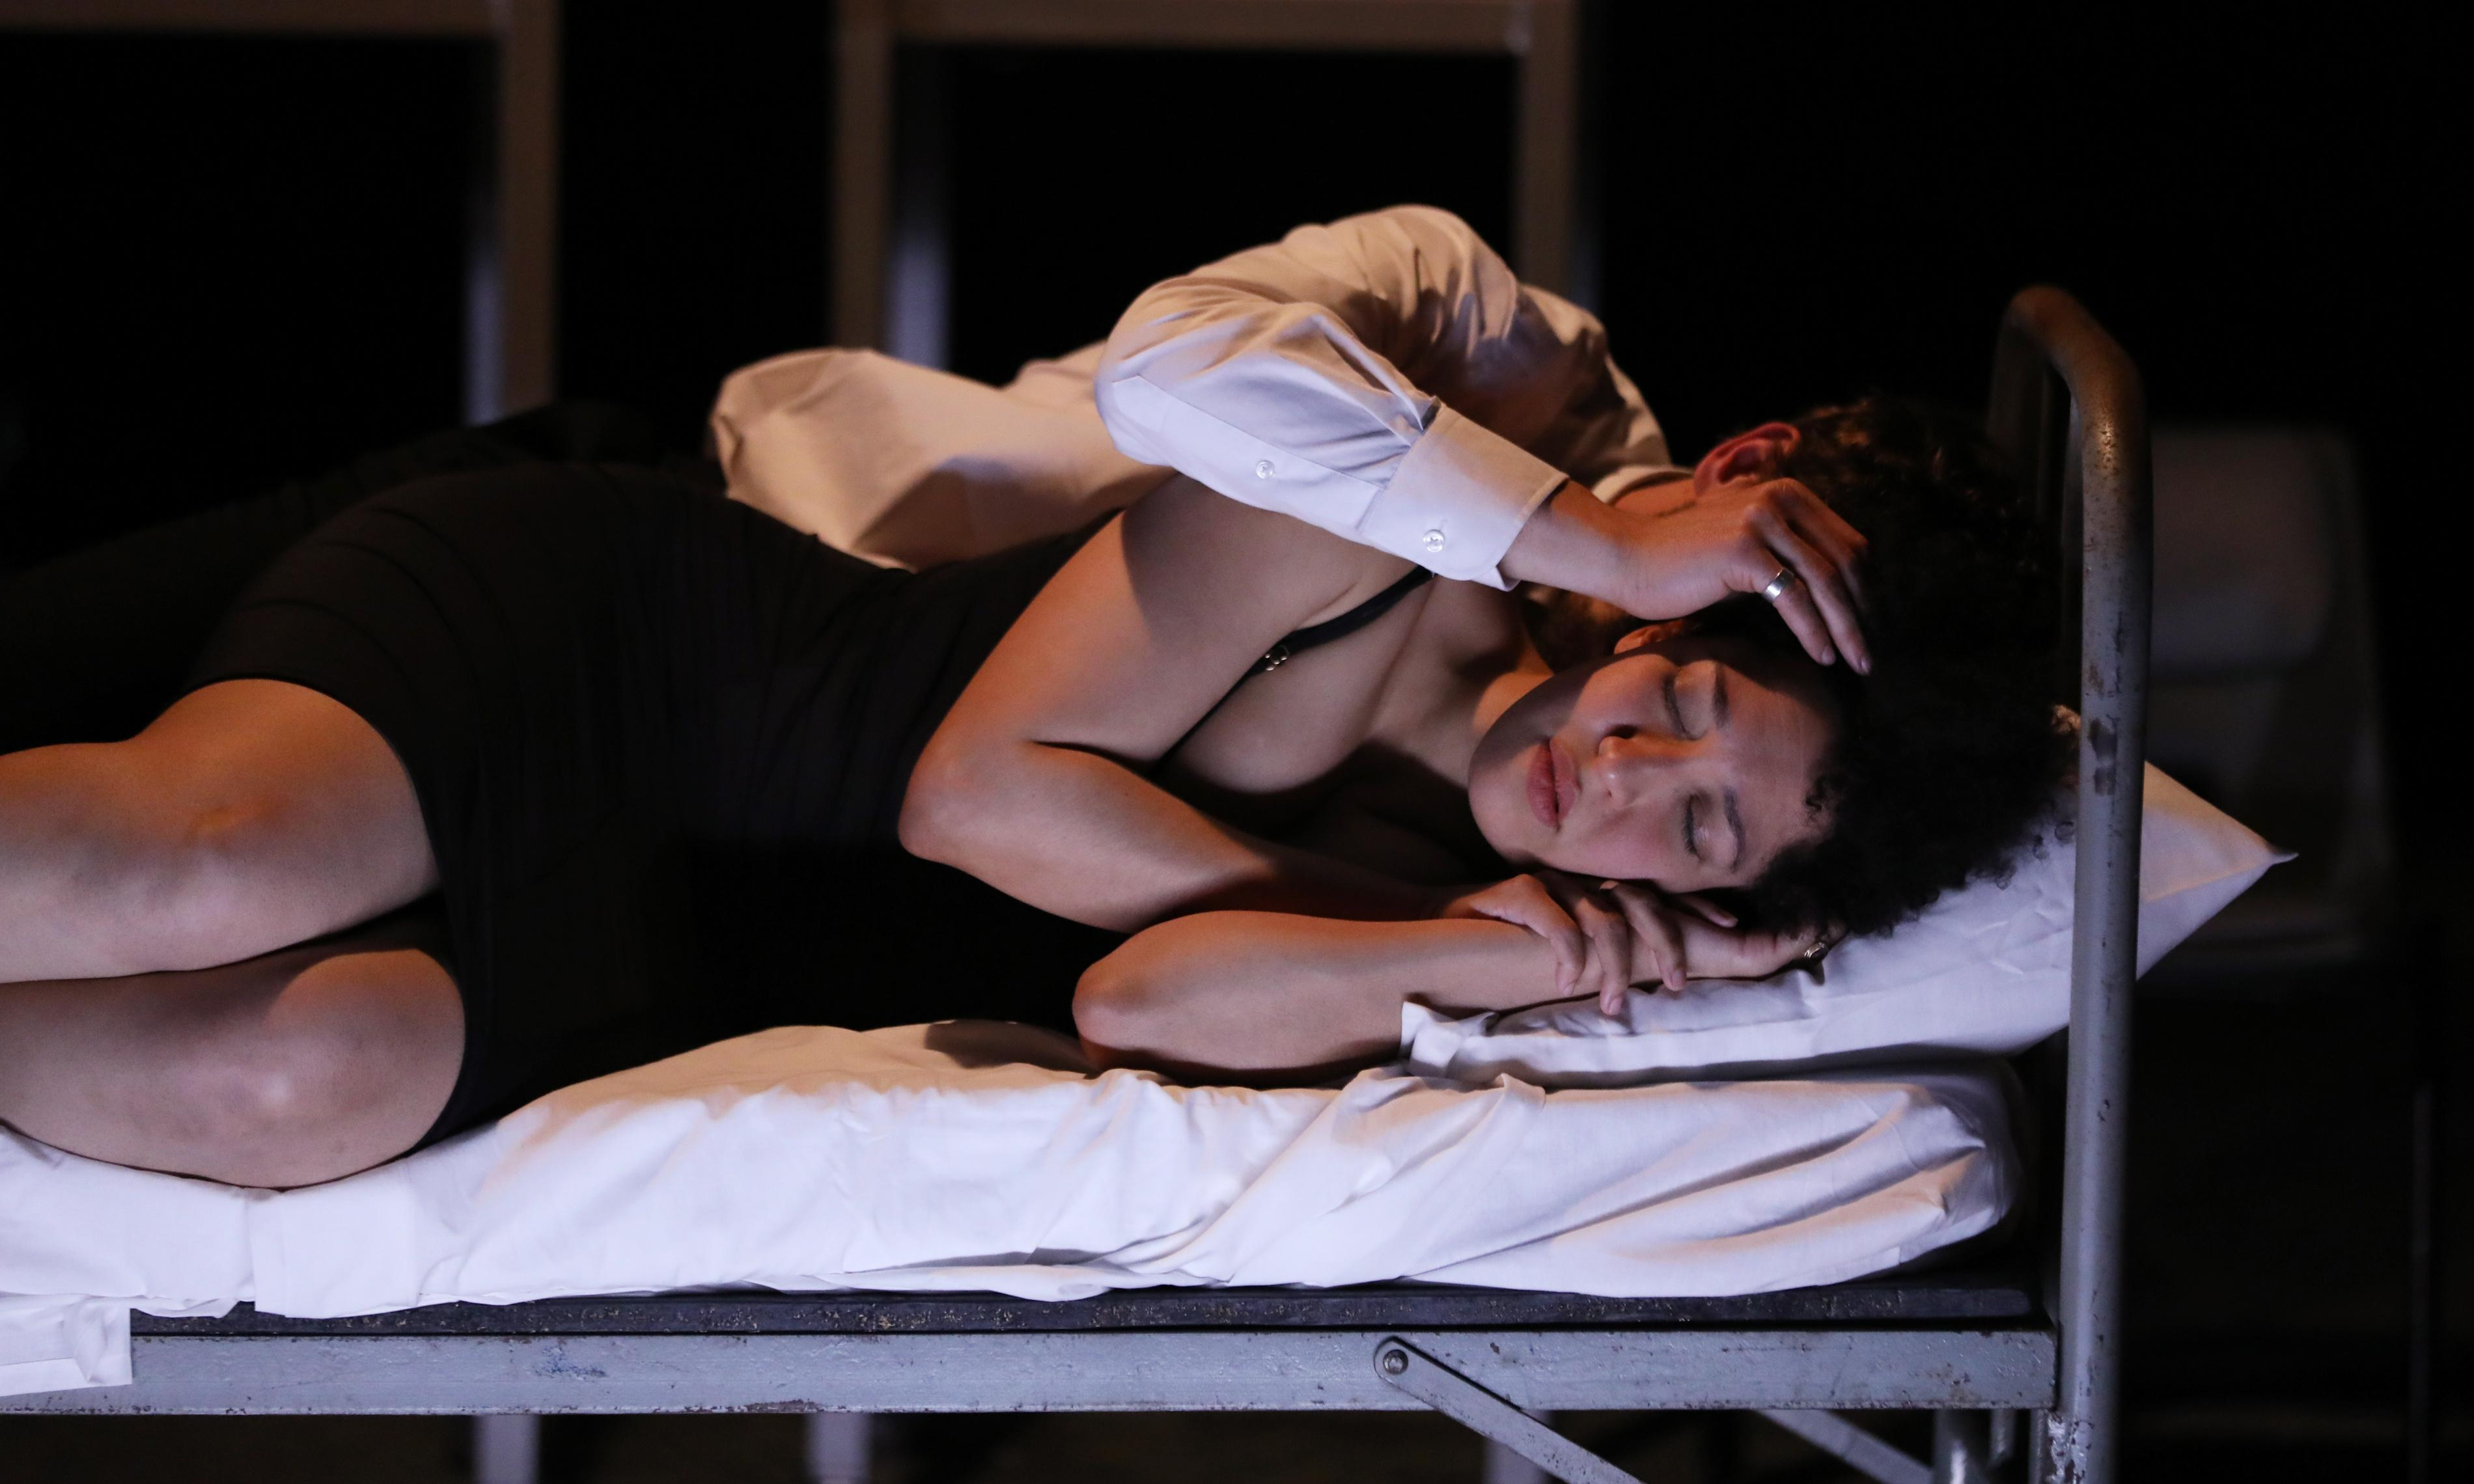 Zauberland review – after horrors, a feeling of 'so what' remains